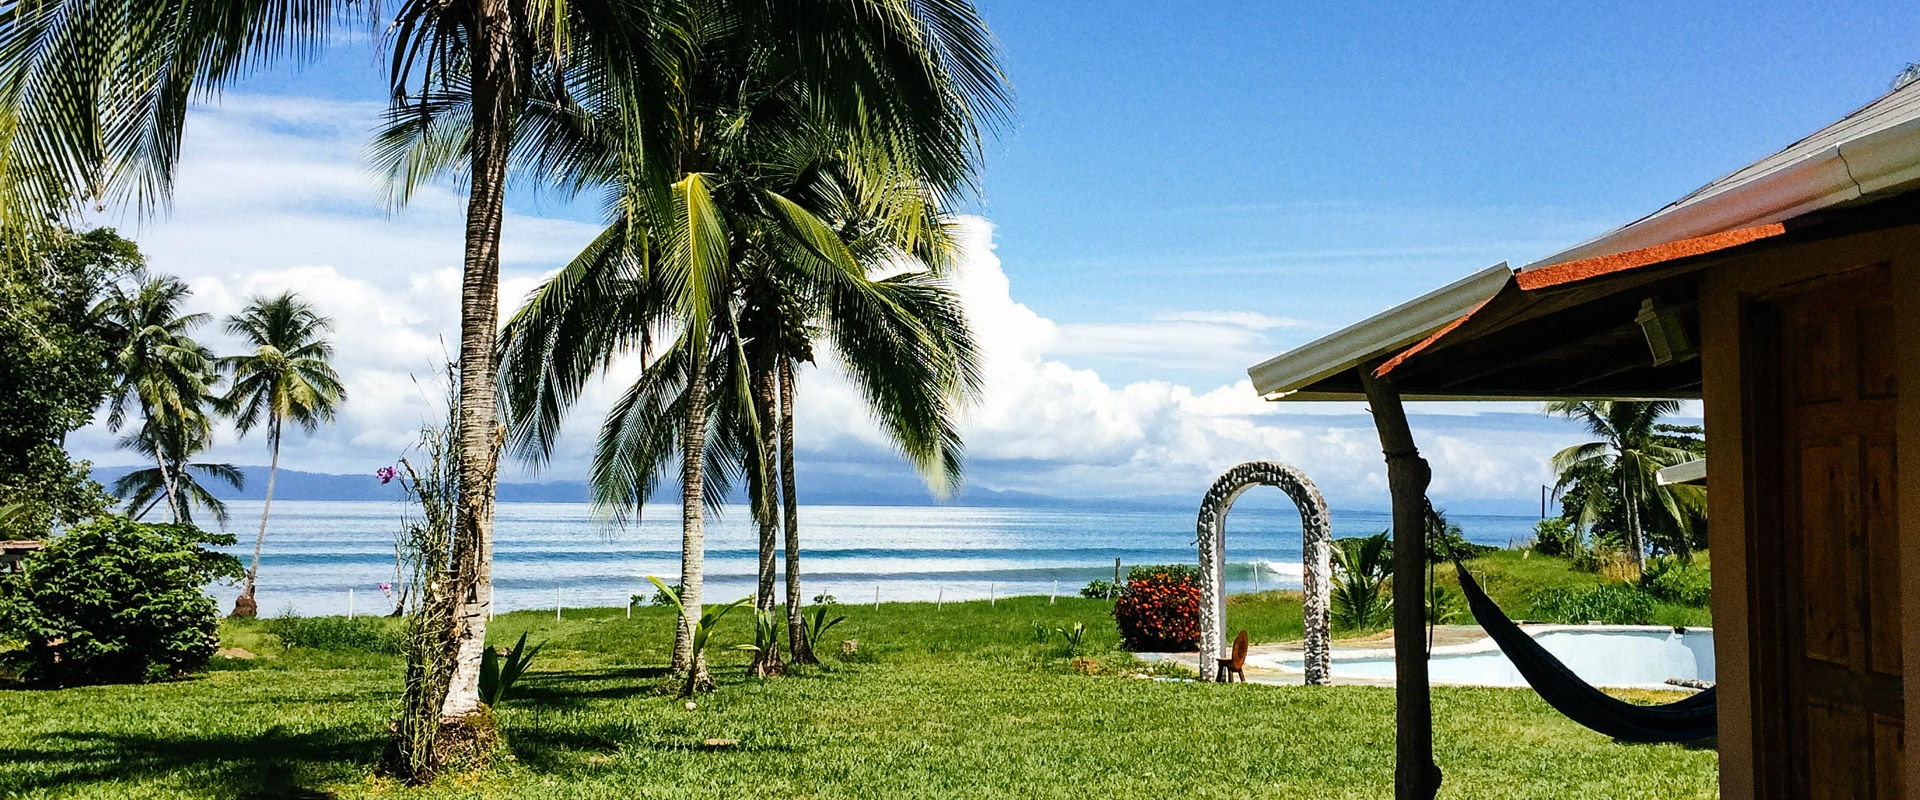 surf-expedition-costa-rica-surf-camp